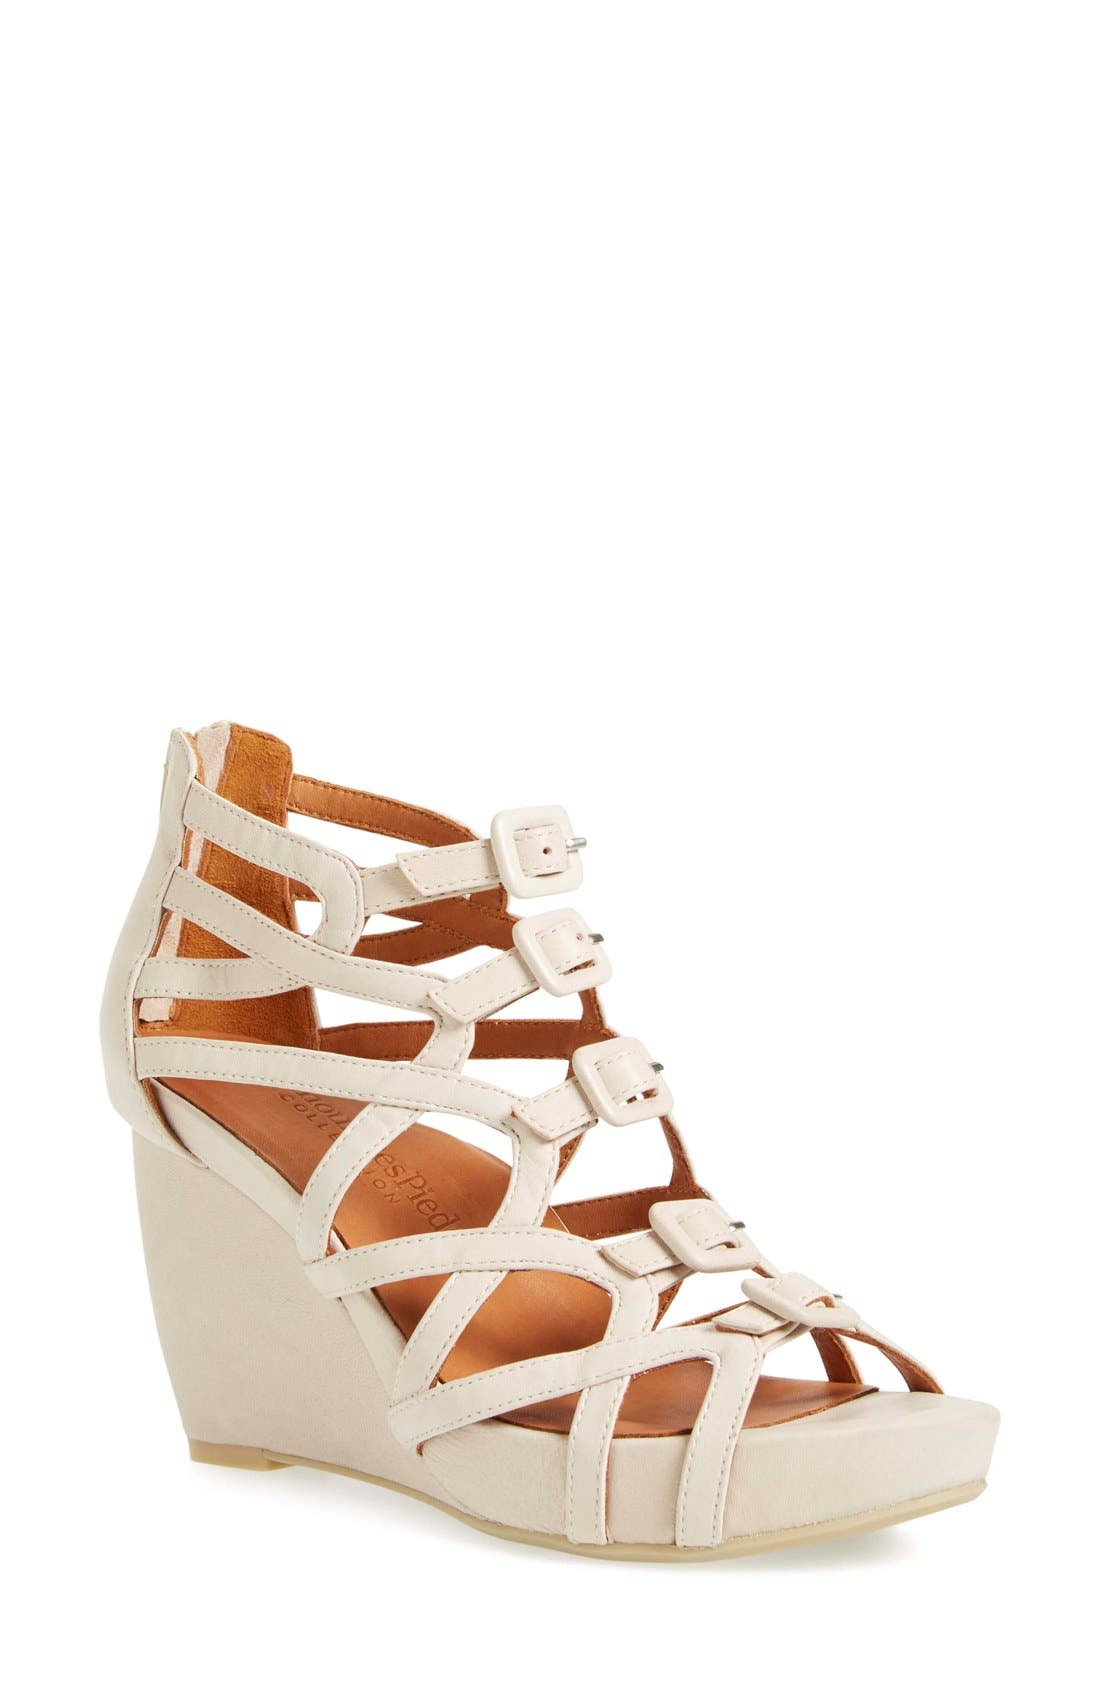 Ivanna' Gladiator Wedge Sandal,                             Main thumbnail 1, color,                             260